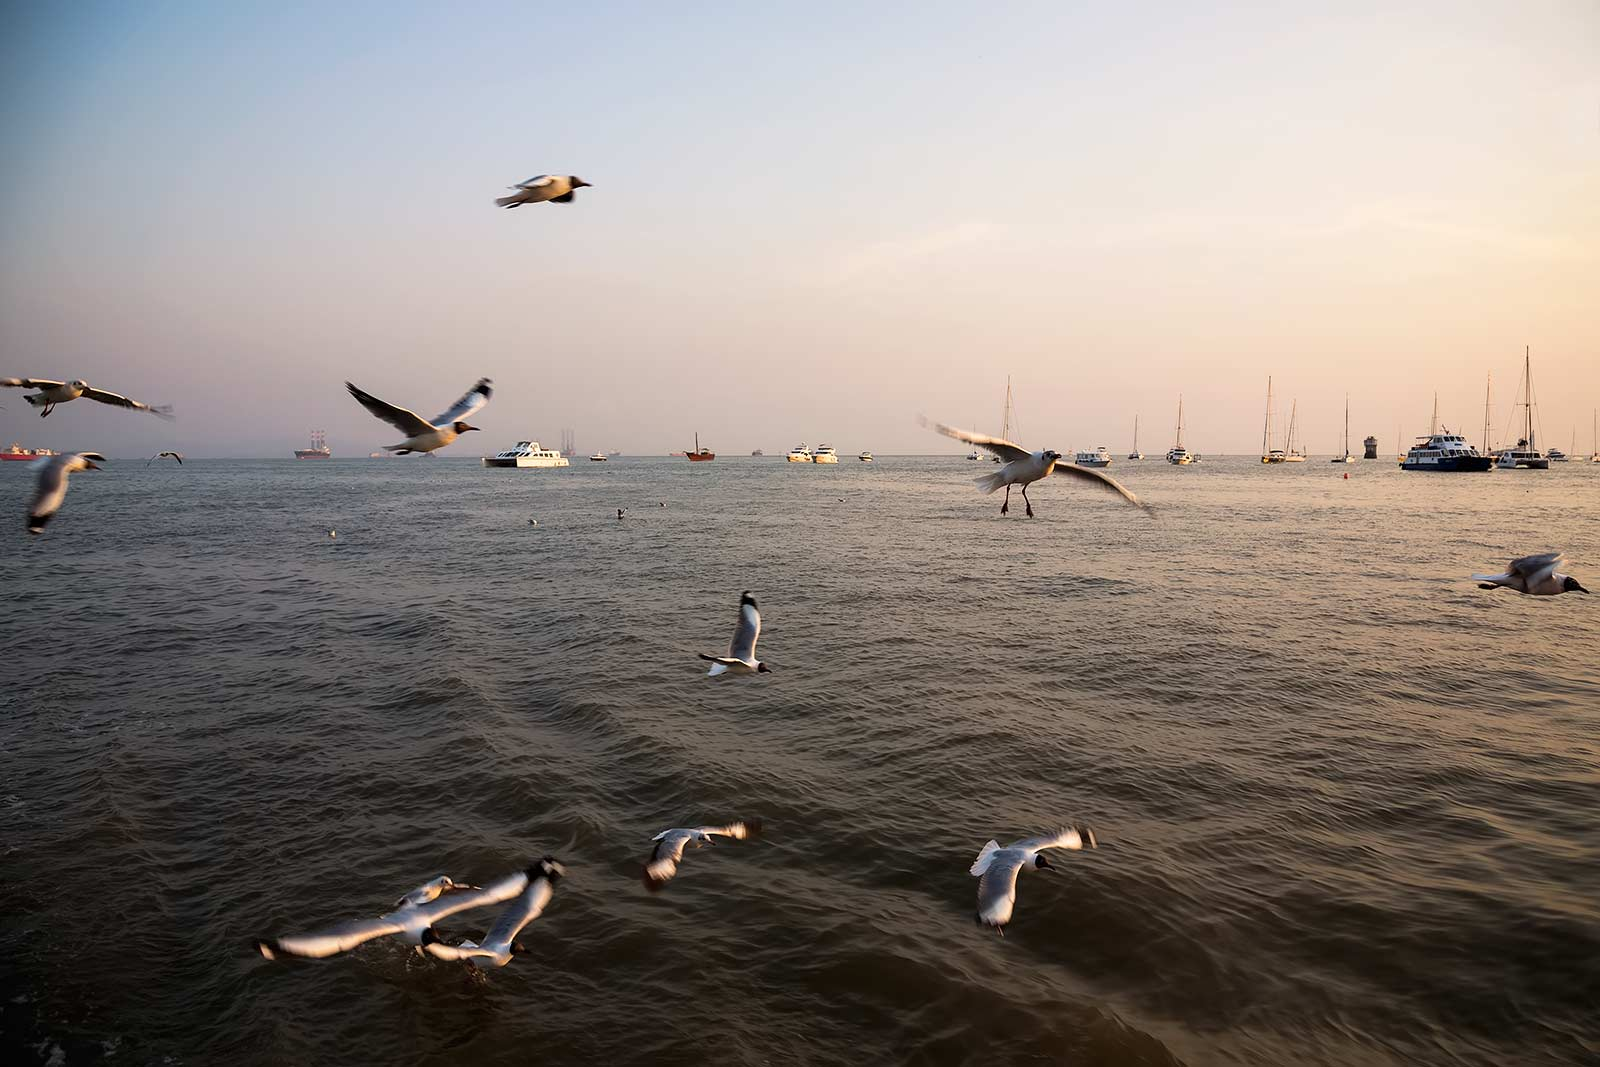 A Mumbai boat cruise at dawn will provide you with perfect photo opportunities.